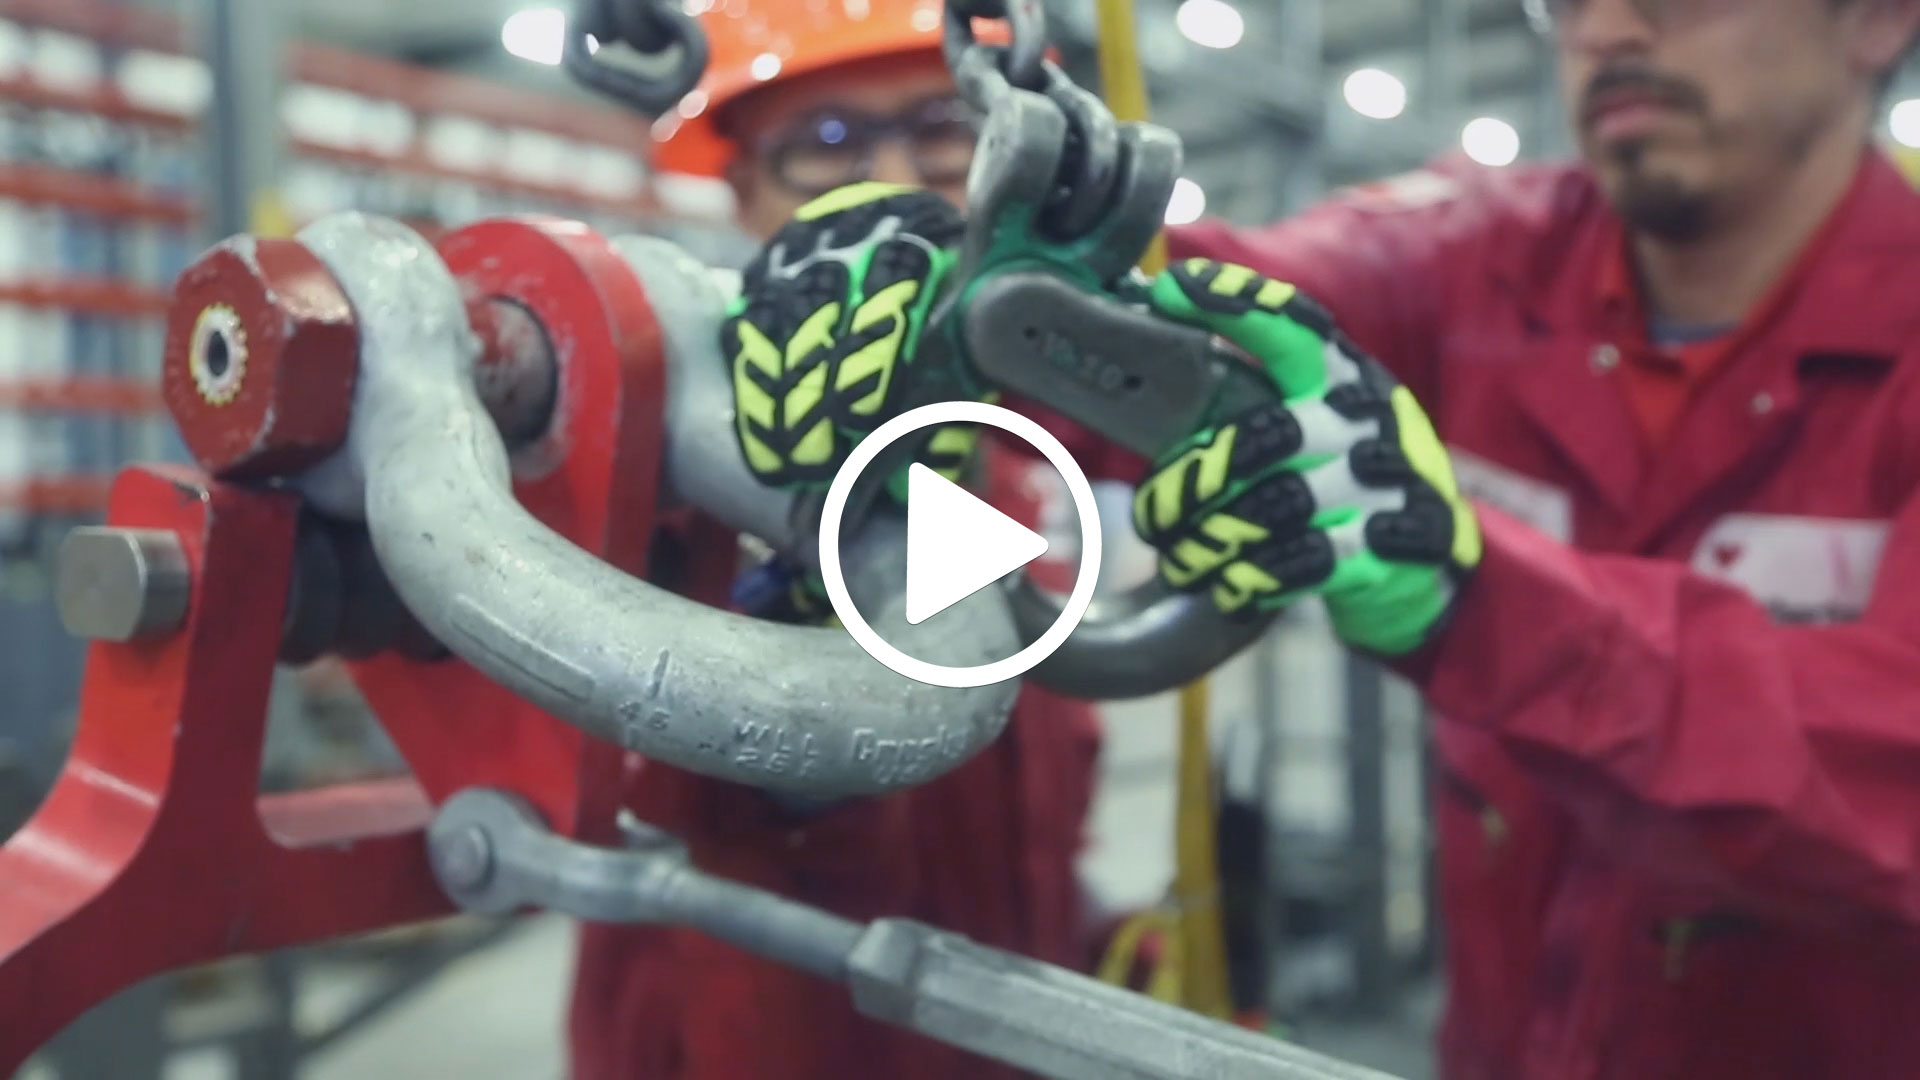 Watch our careers video for available job opening Field Service Technician I – Capillary in San Antonio, TX